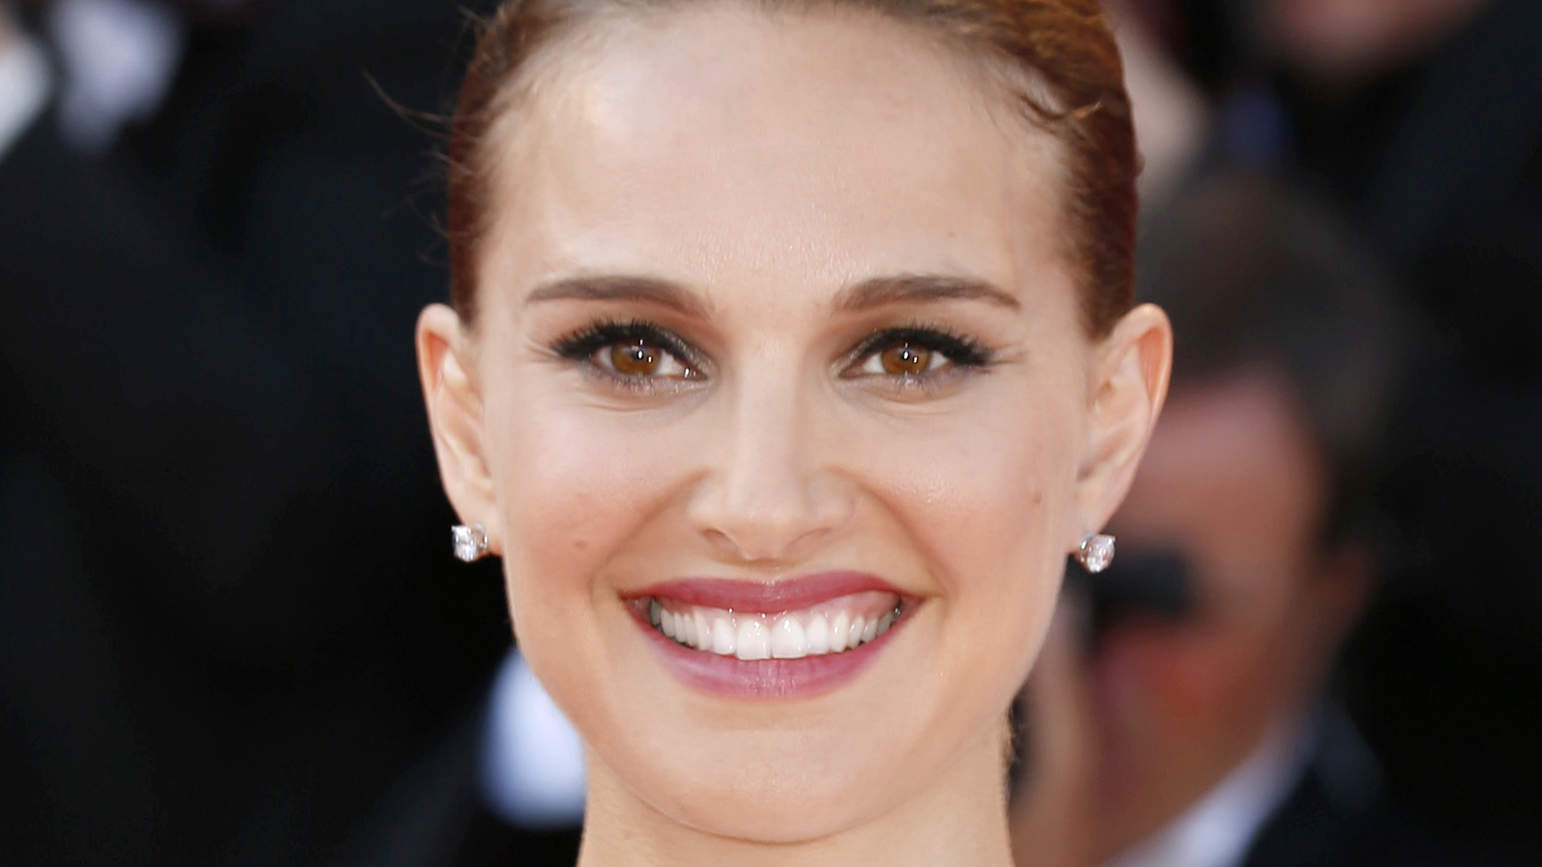 Natalie Portman on Her FavoriteFrench-Girl Makeup Trick and Her New Movie